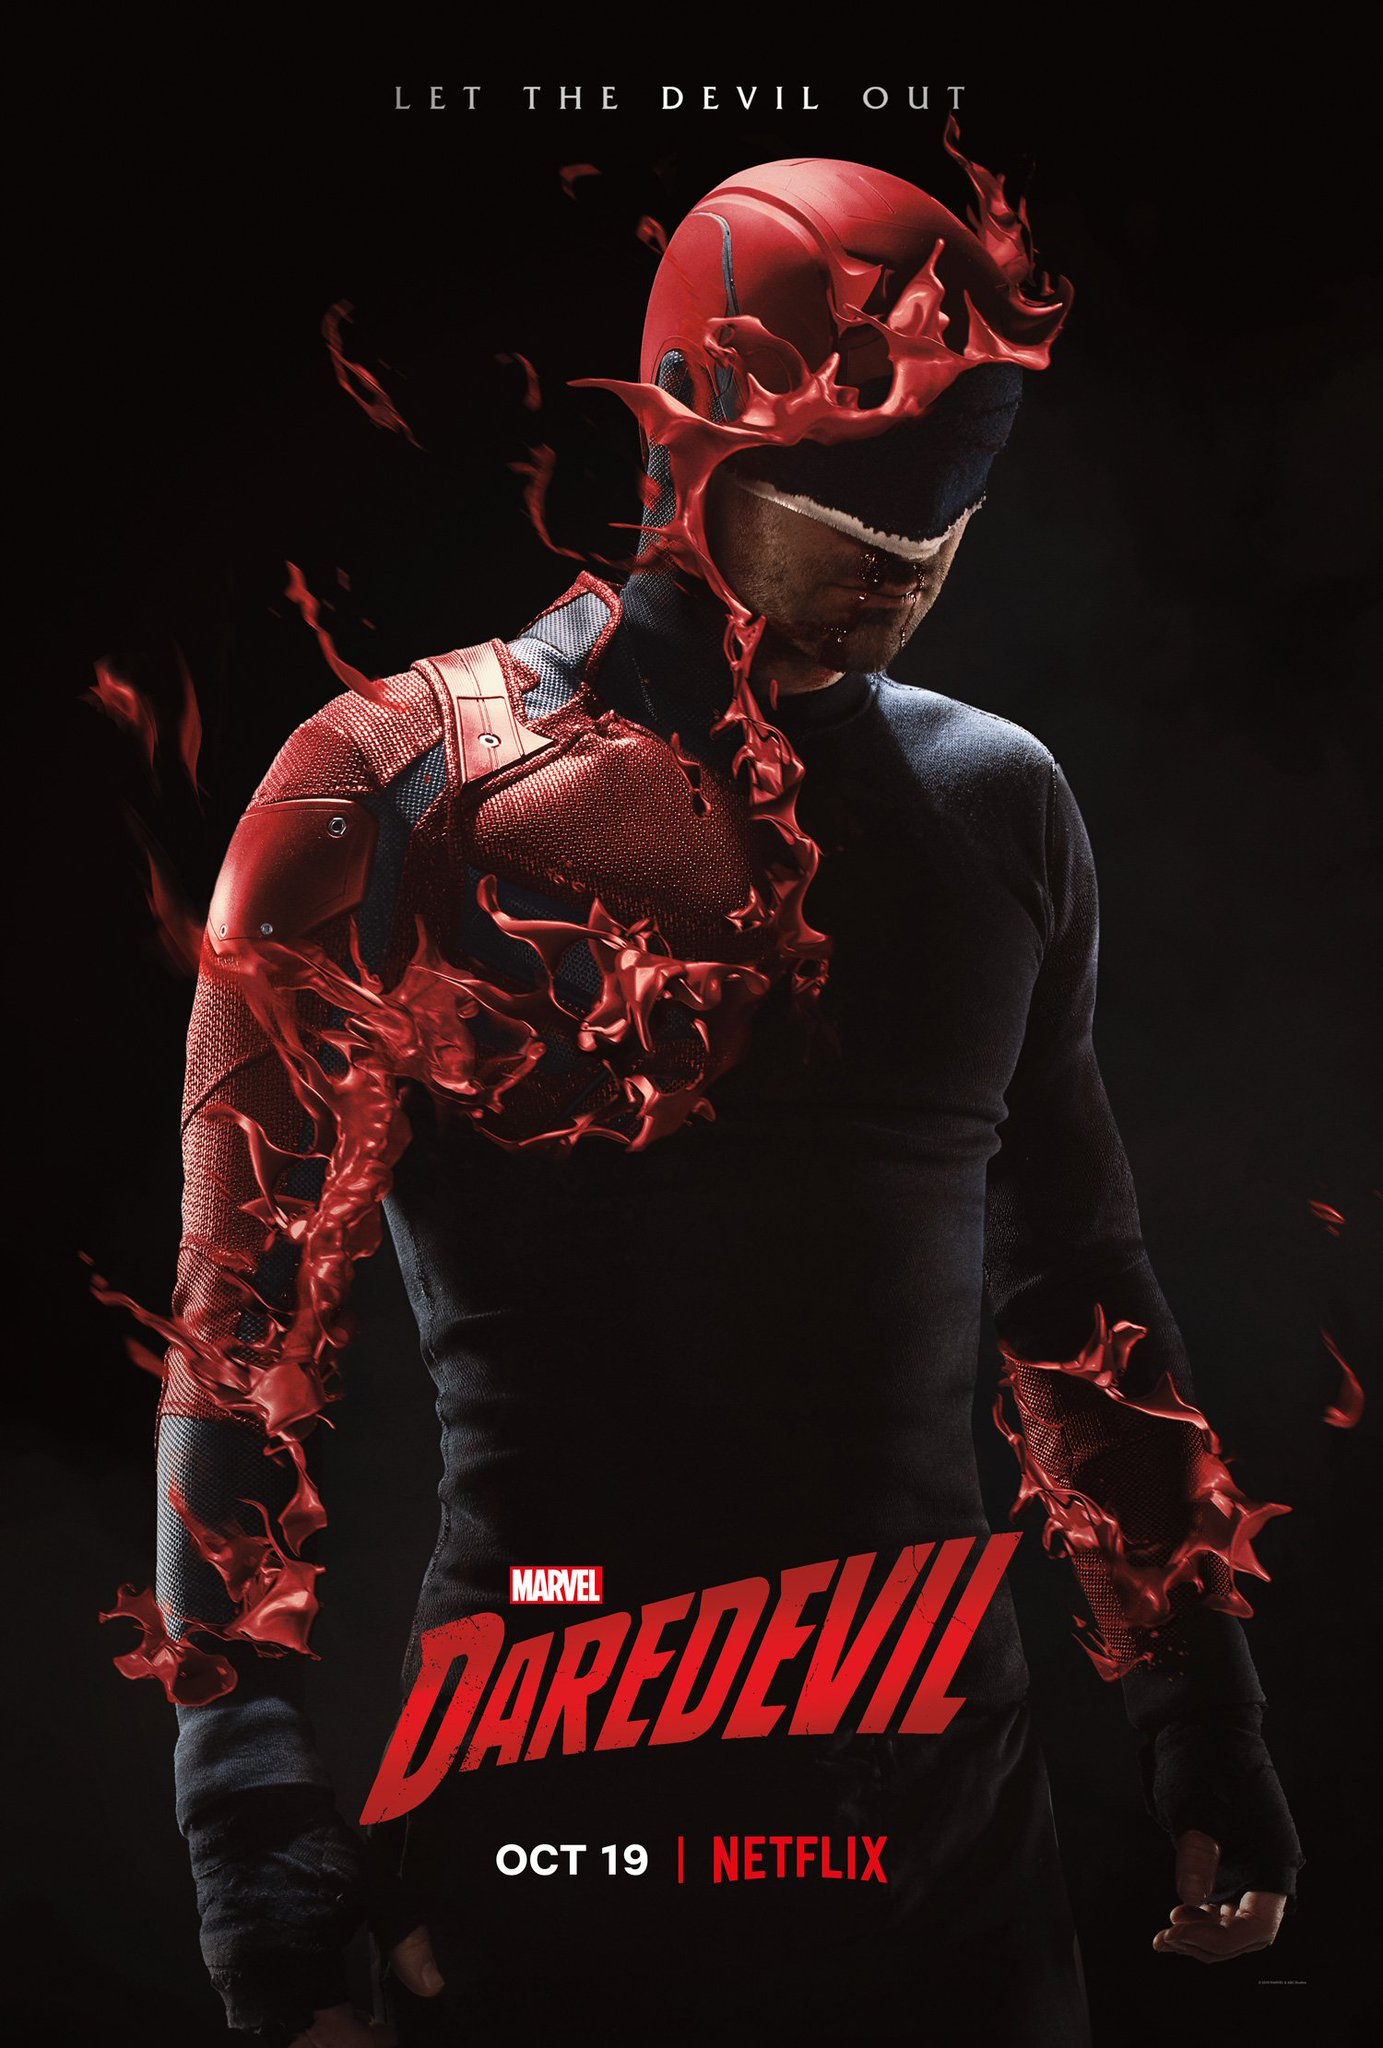 Get ready to let the Devil out. #Daredevil https://t.co/eIob94FiFR